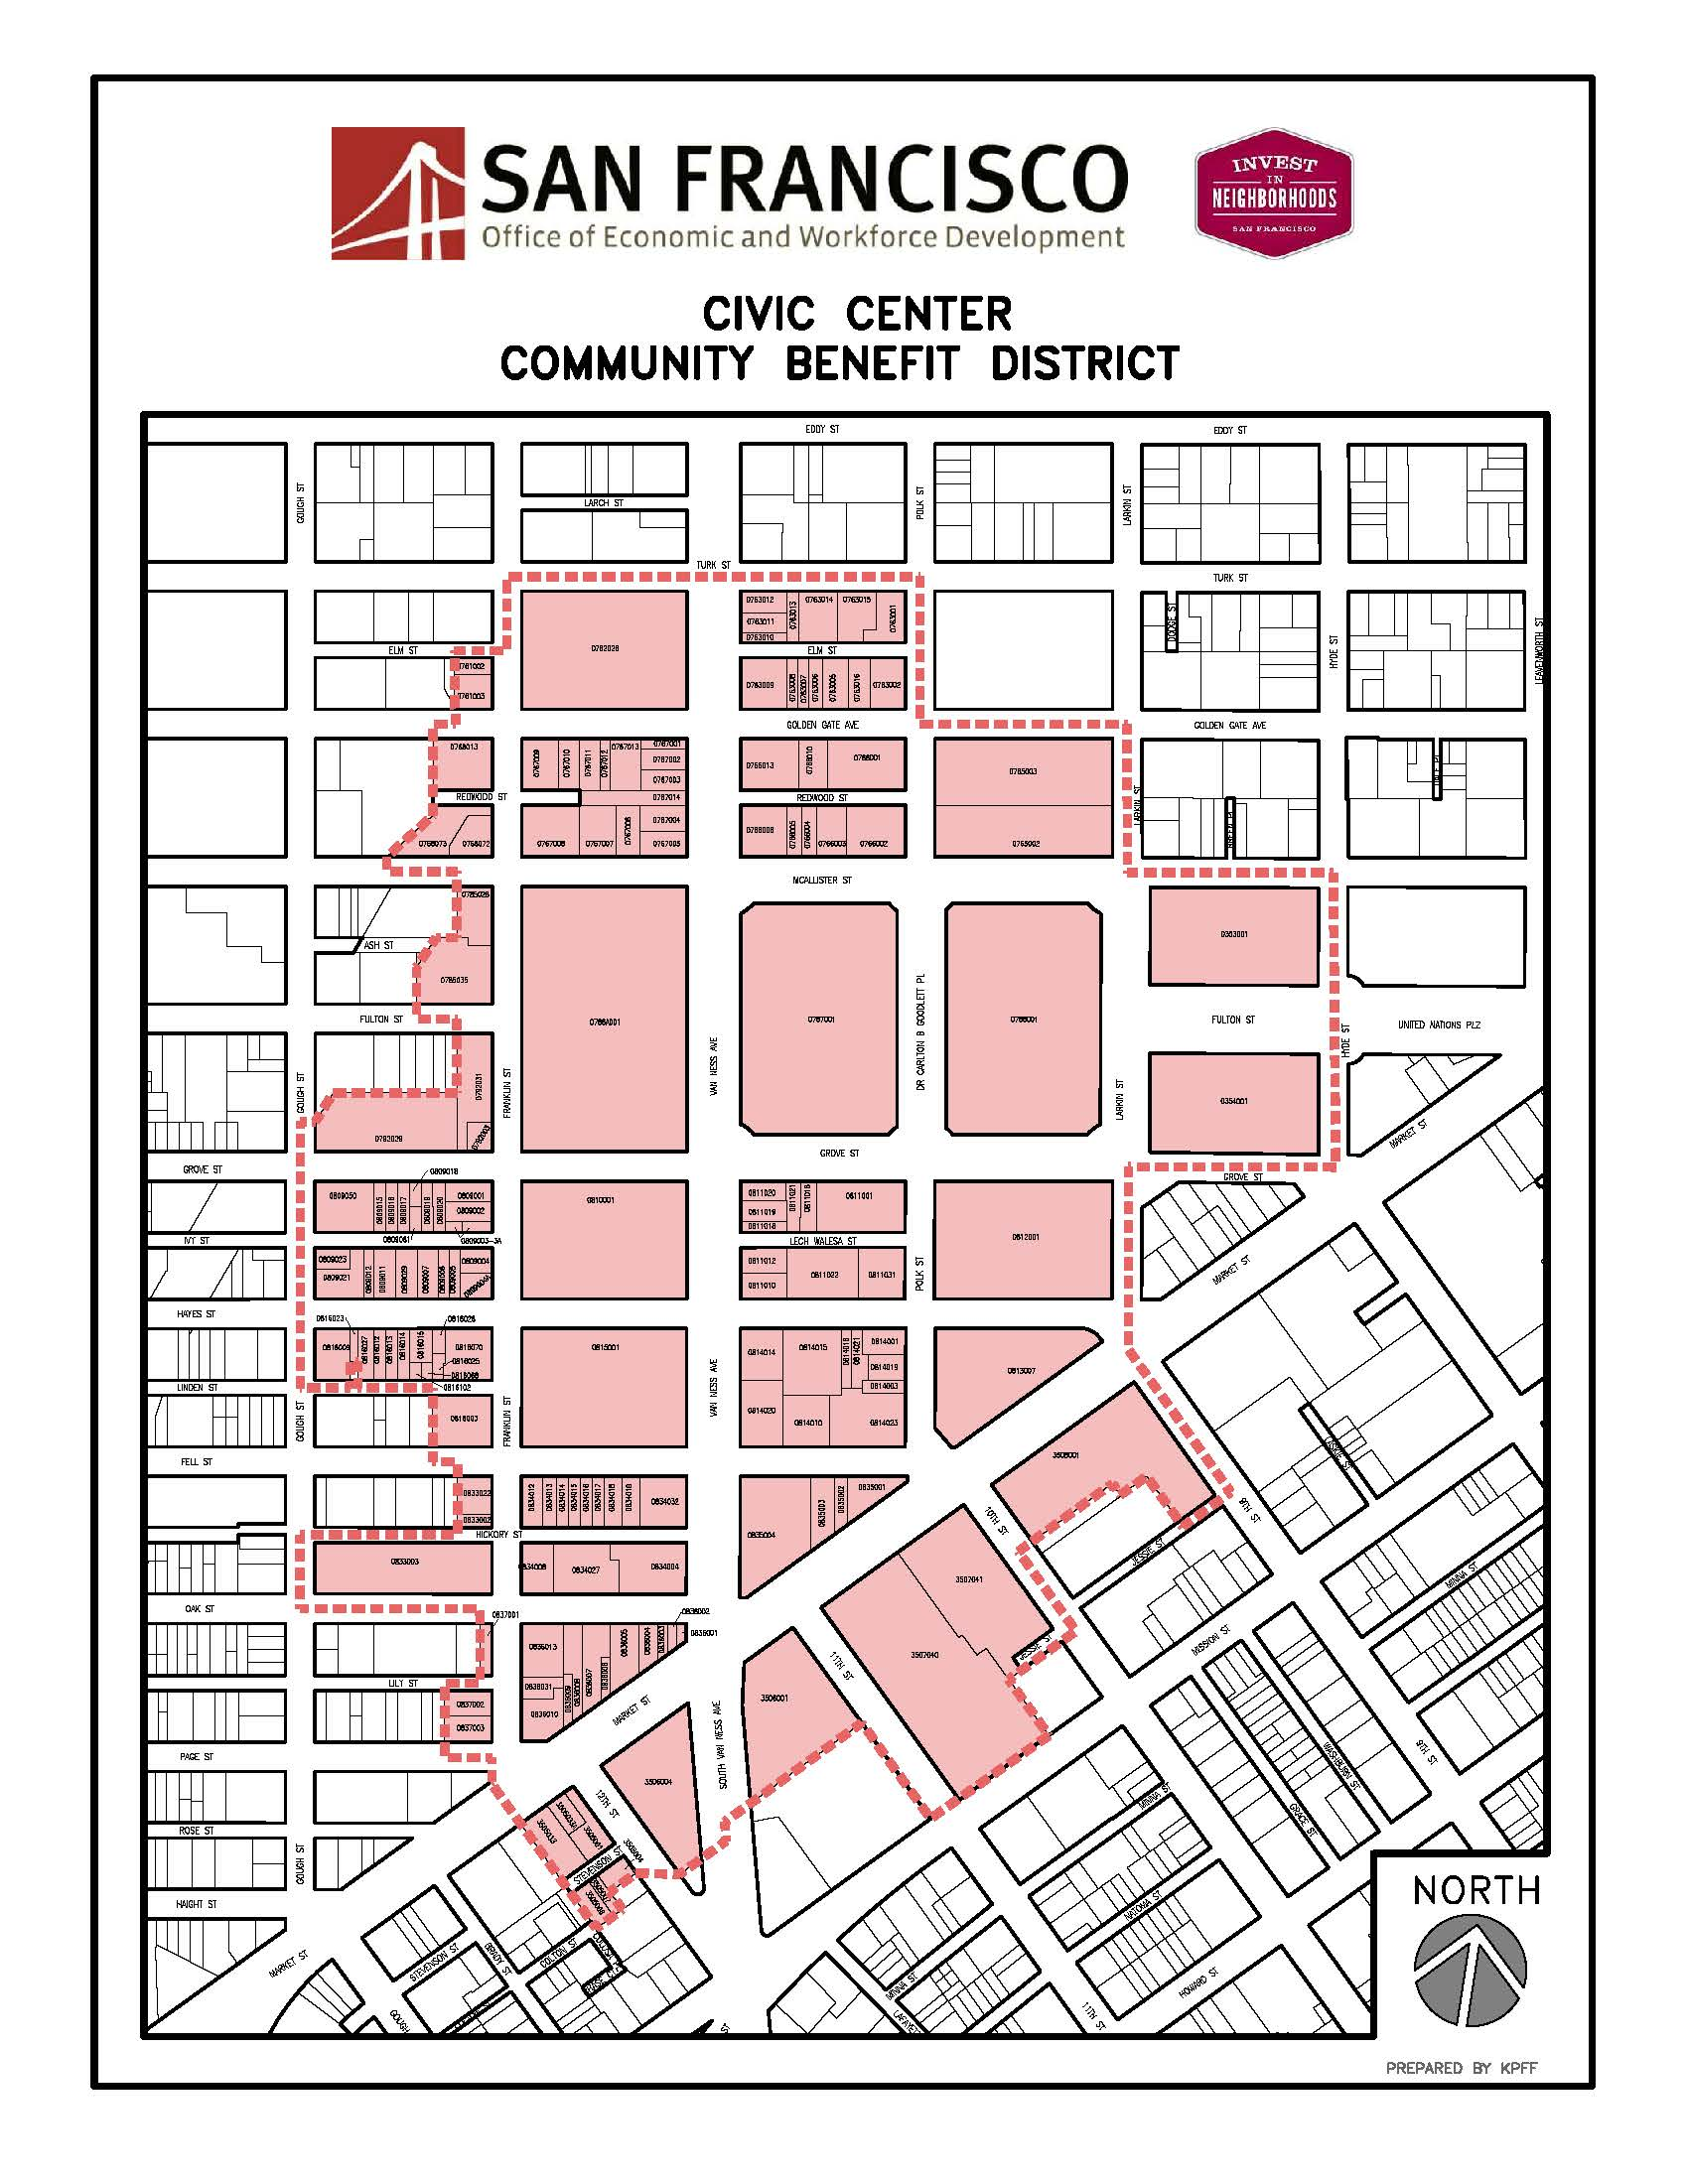 Map of Civic Center Community Benefit District